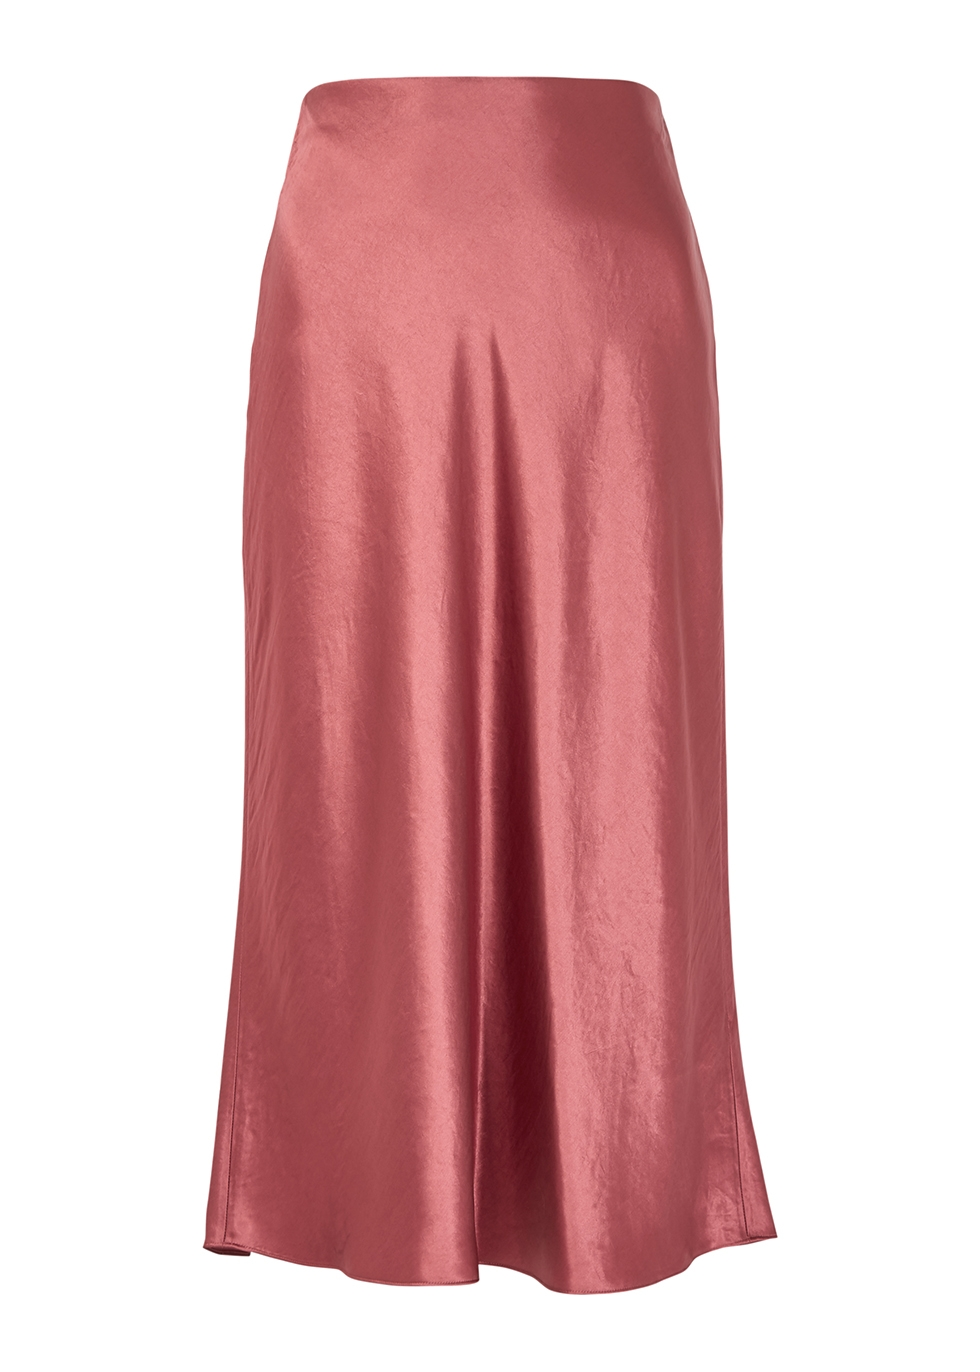 Rose satin midi skirt